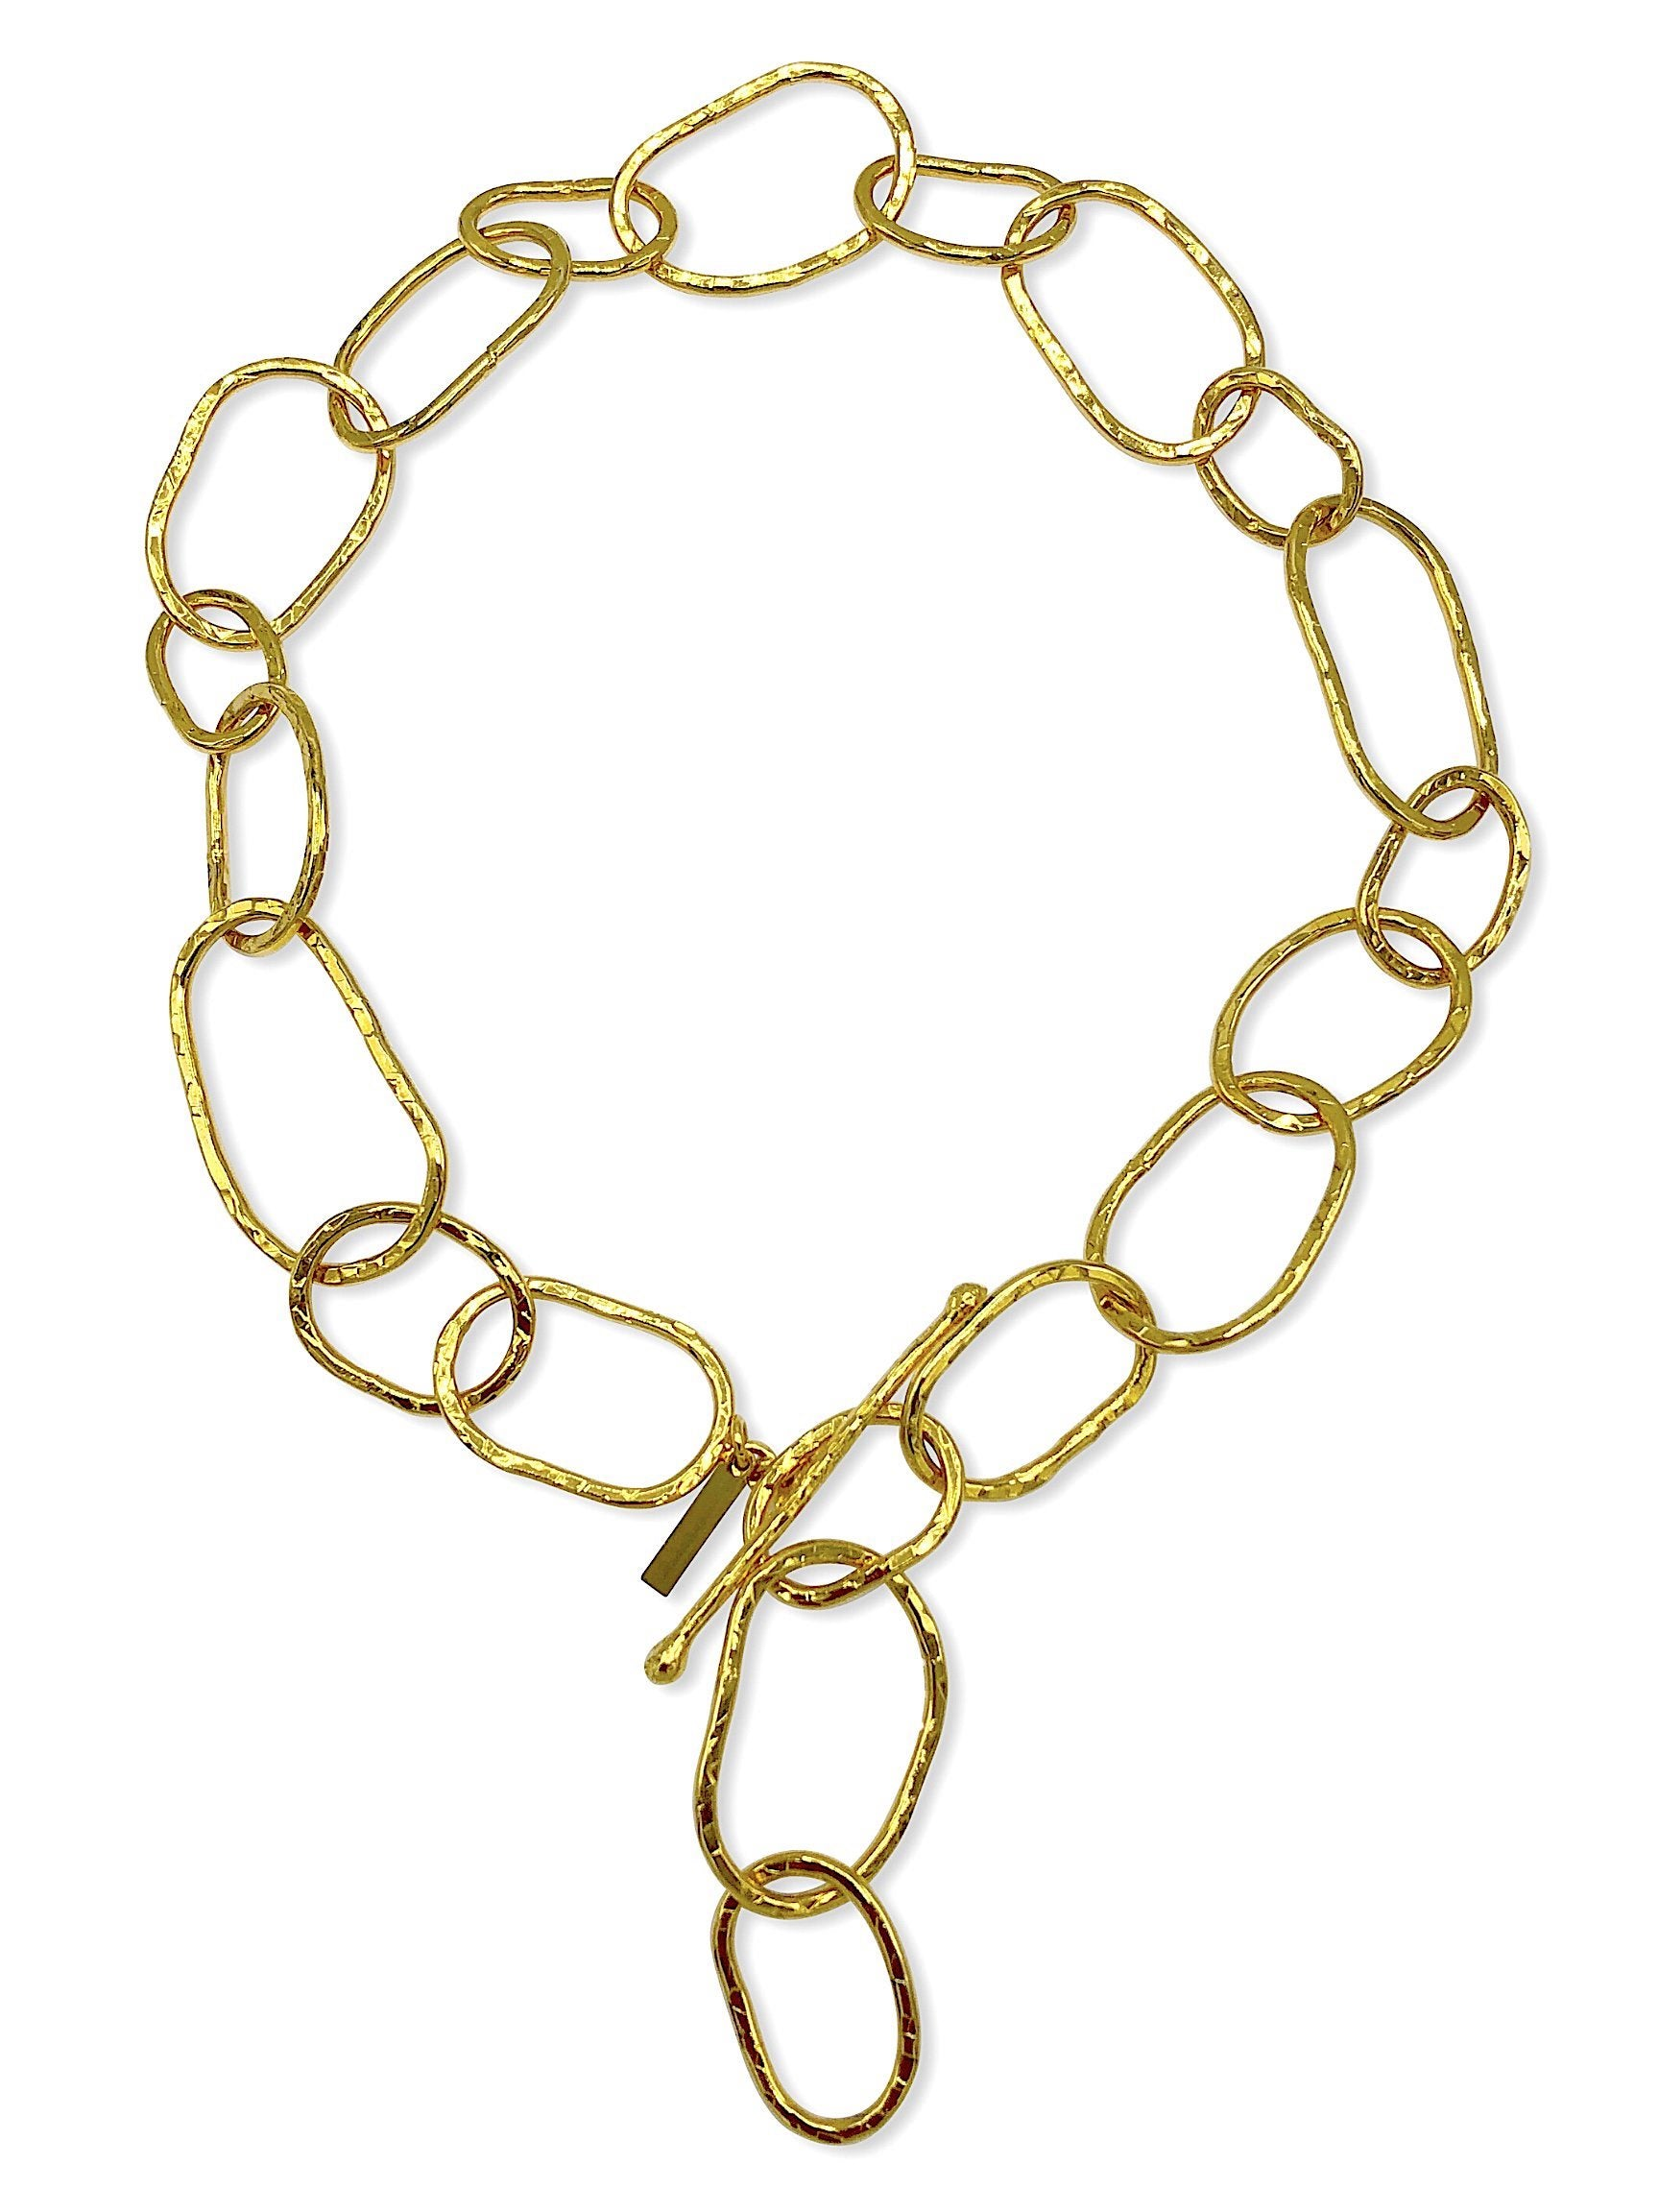 Shackle Gold Link Necklace-Necklaces-JAREDJAMIN Jewelry Online-JARED JAMIN